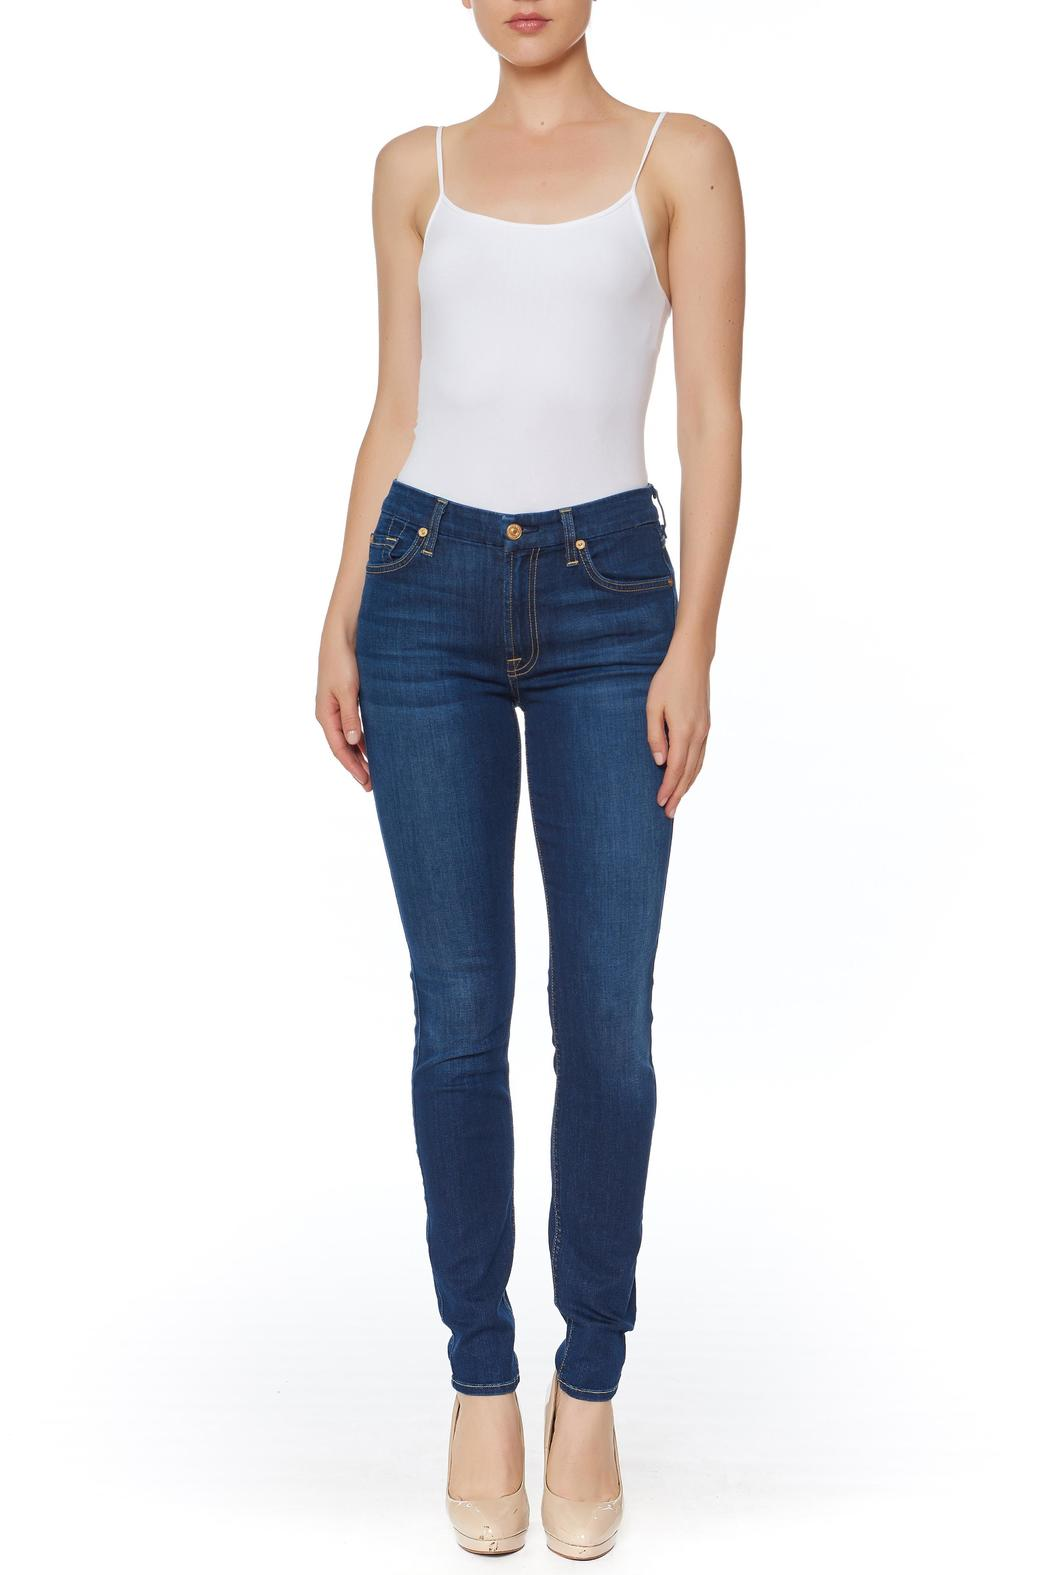 7 For all Mankind Air Denim Skinny Jeans - Front Cropped Image